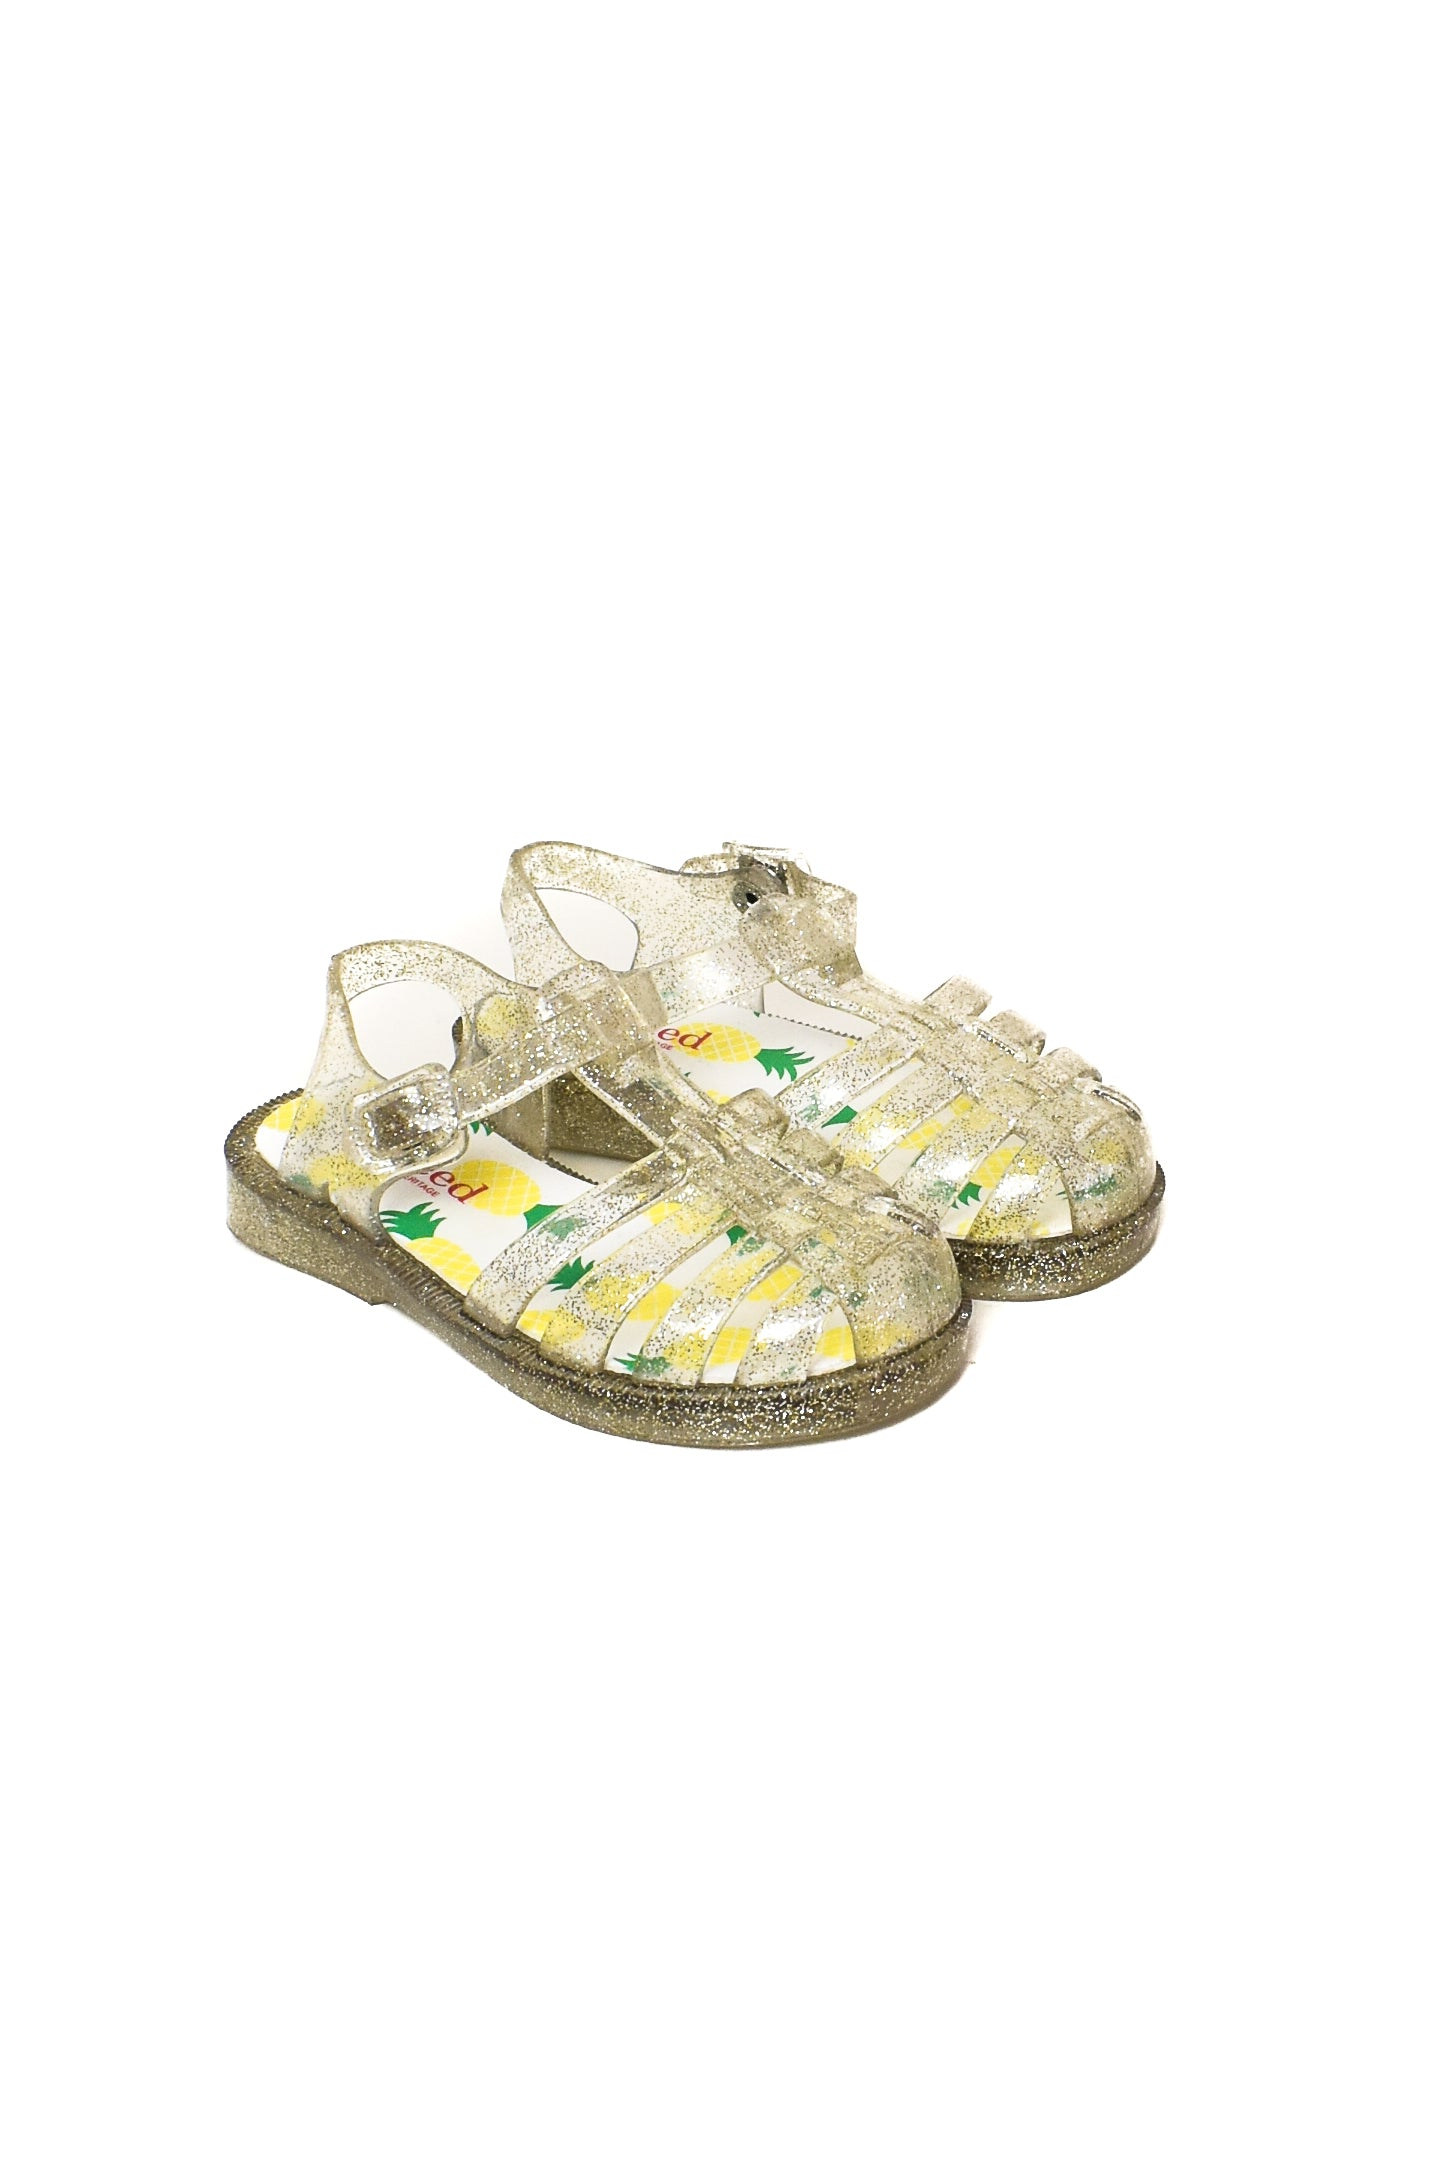 10008711 Seed Kids~ Shoes 5T (EU 28) at Retykle